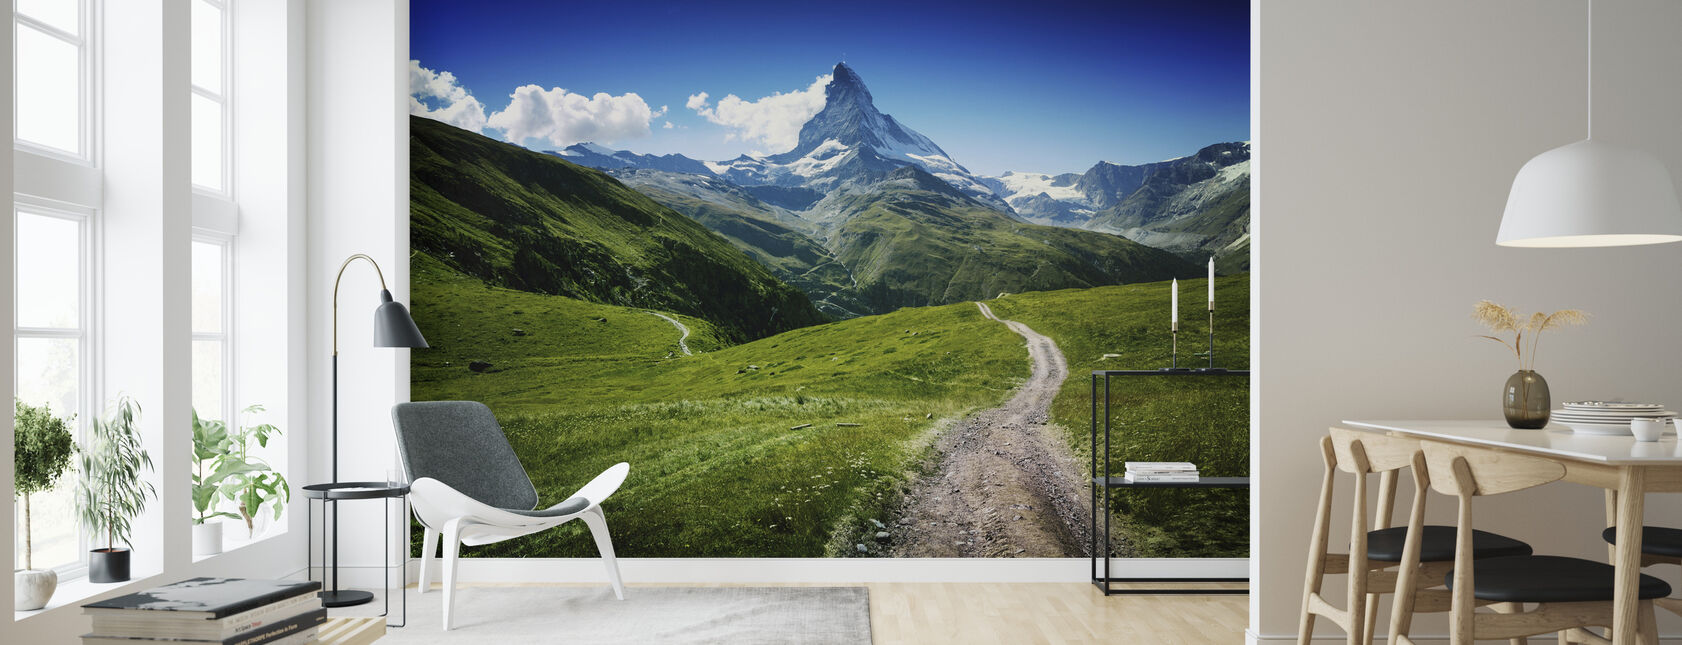 Matterhorn II - Wallpaper - Living Room